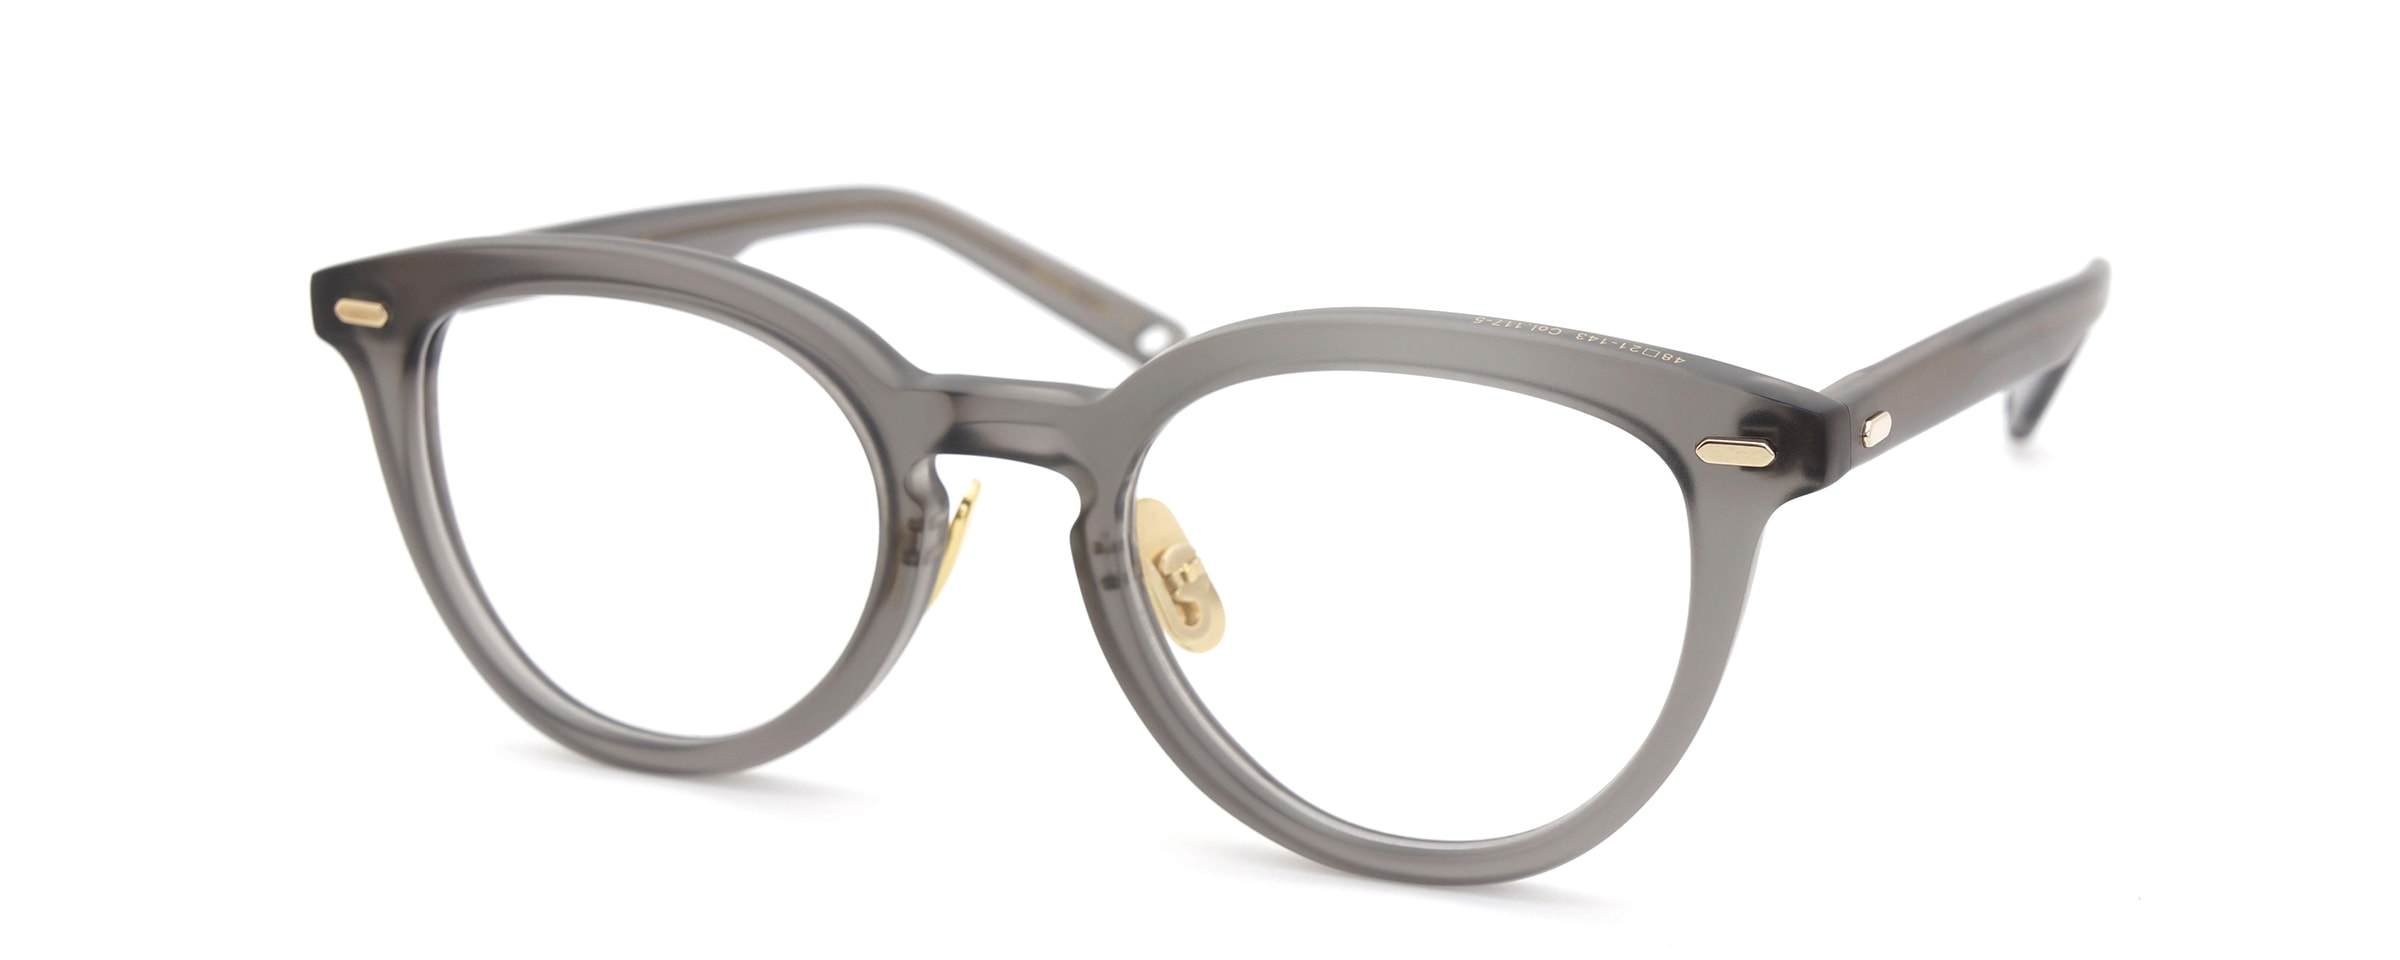 OG × OLIVER GOLDSMITH Re:PELOTA 48 リ:ペロタ